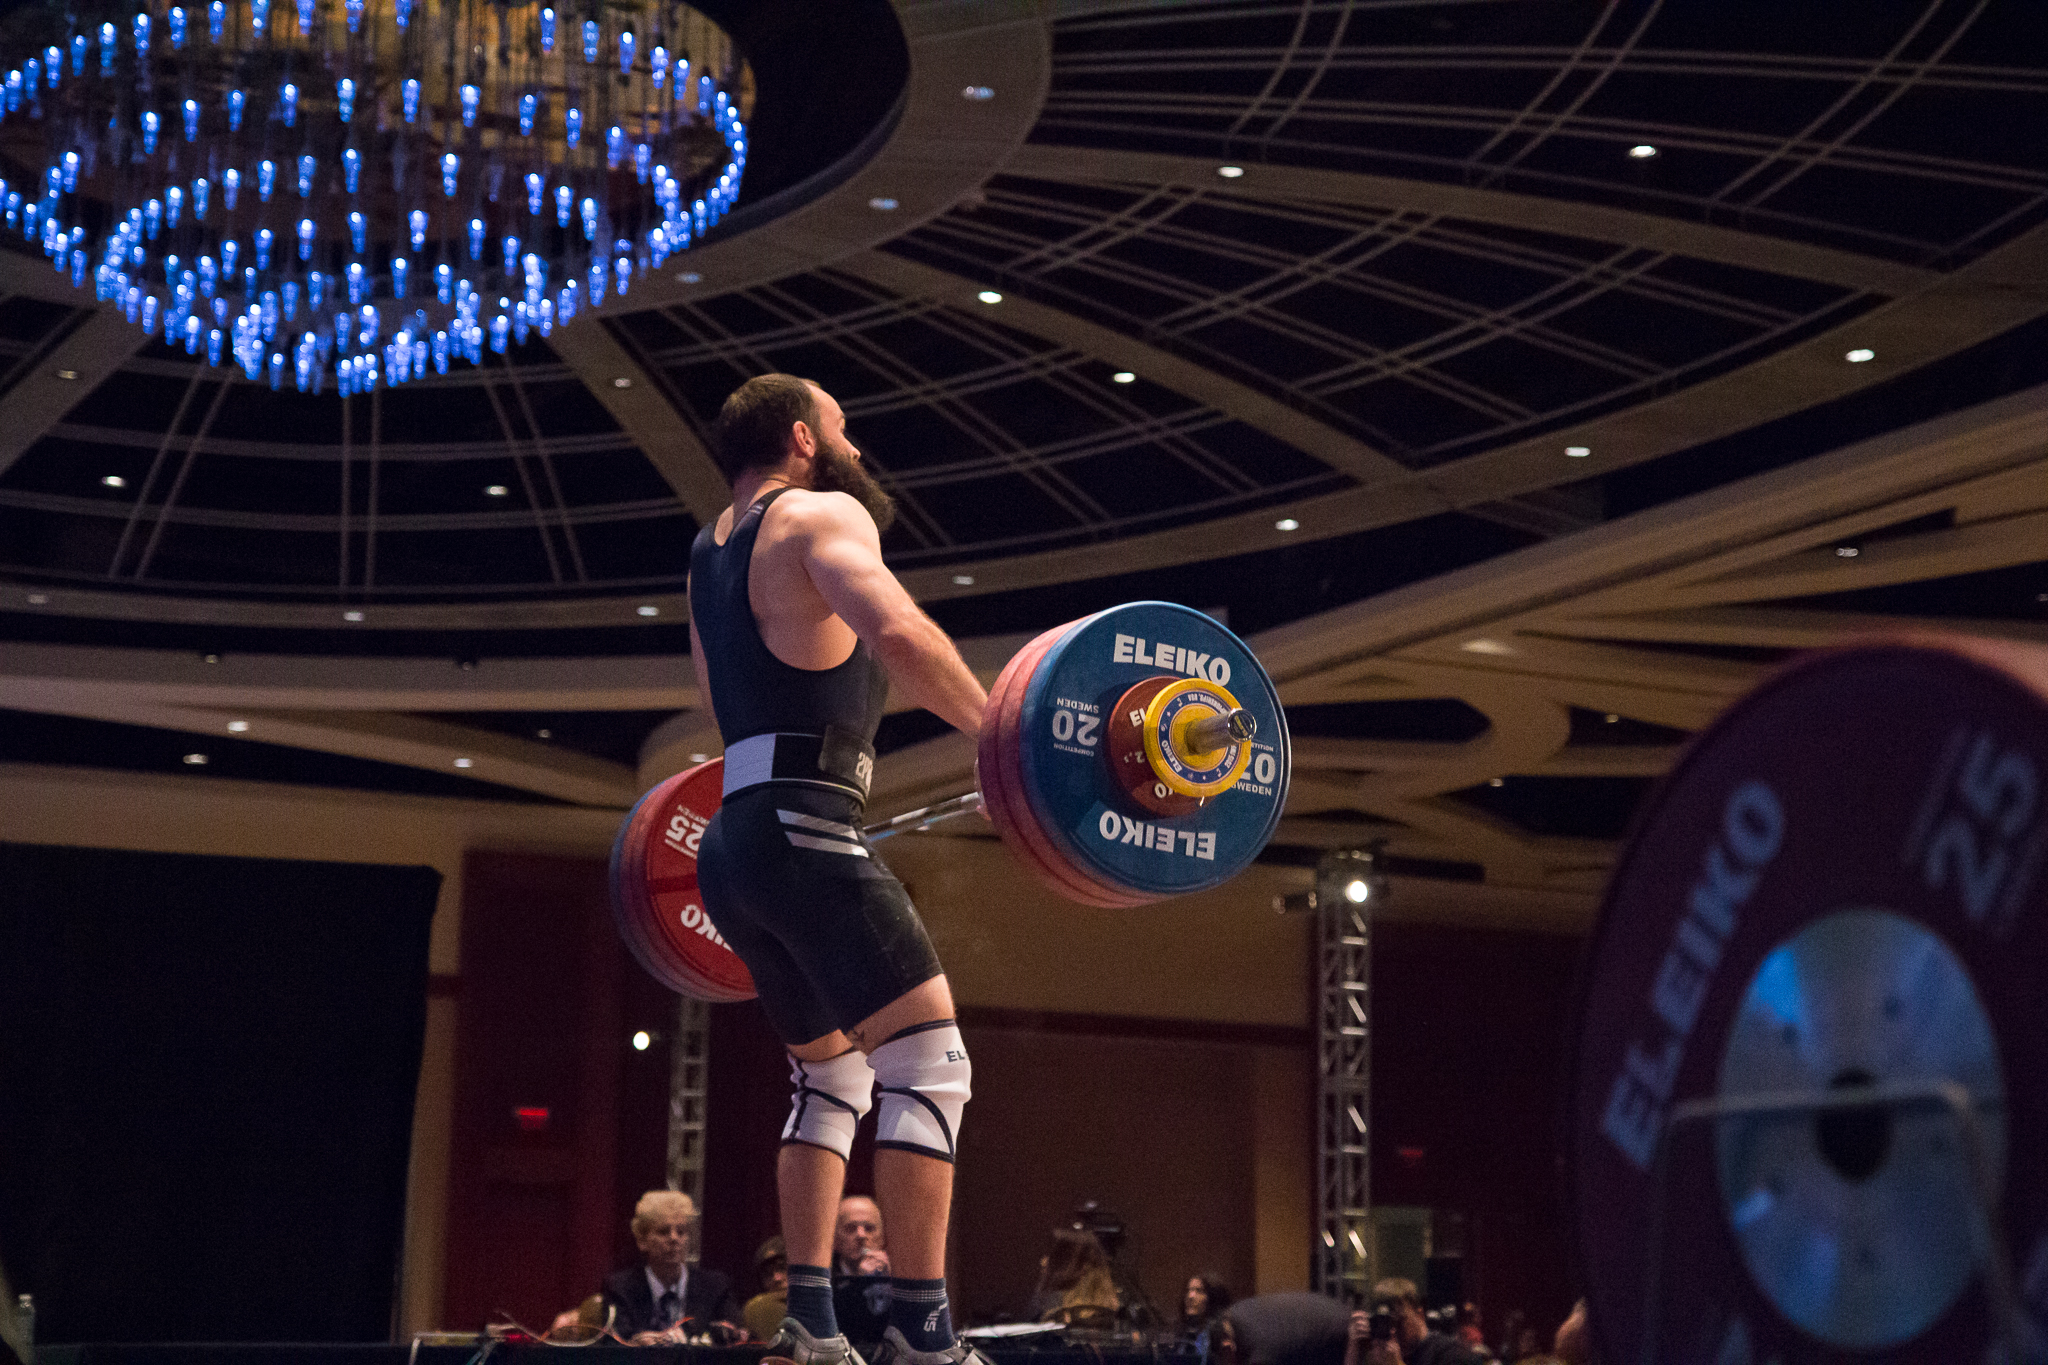 session-a-favorites-american-open-2016-weightlifting-photography (28 of 38).jpg